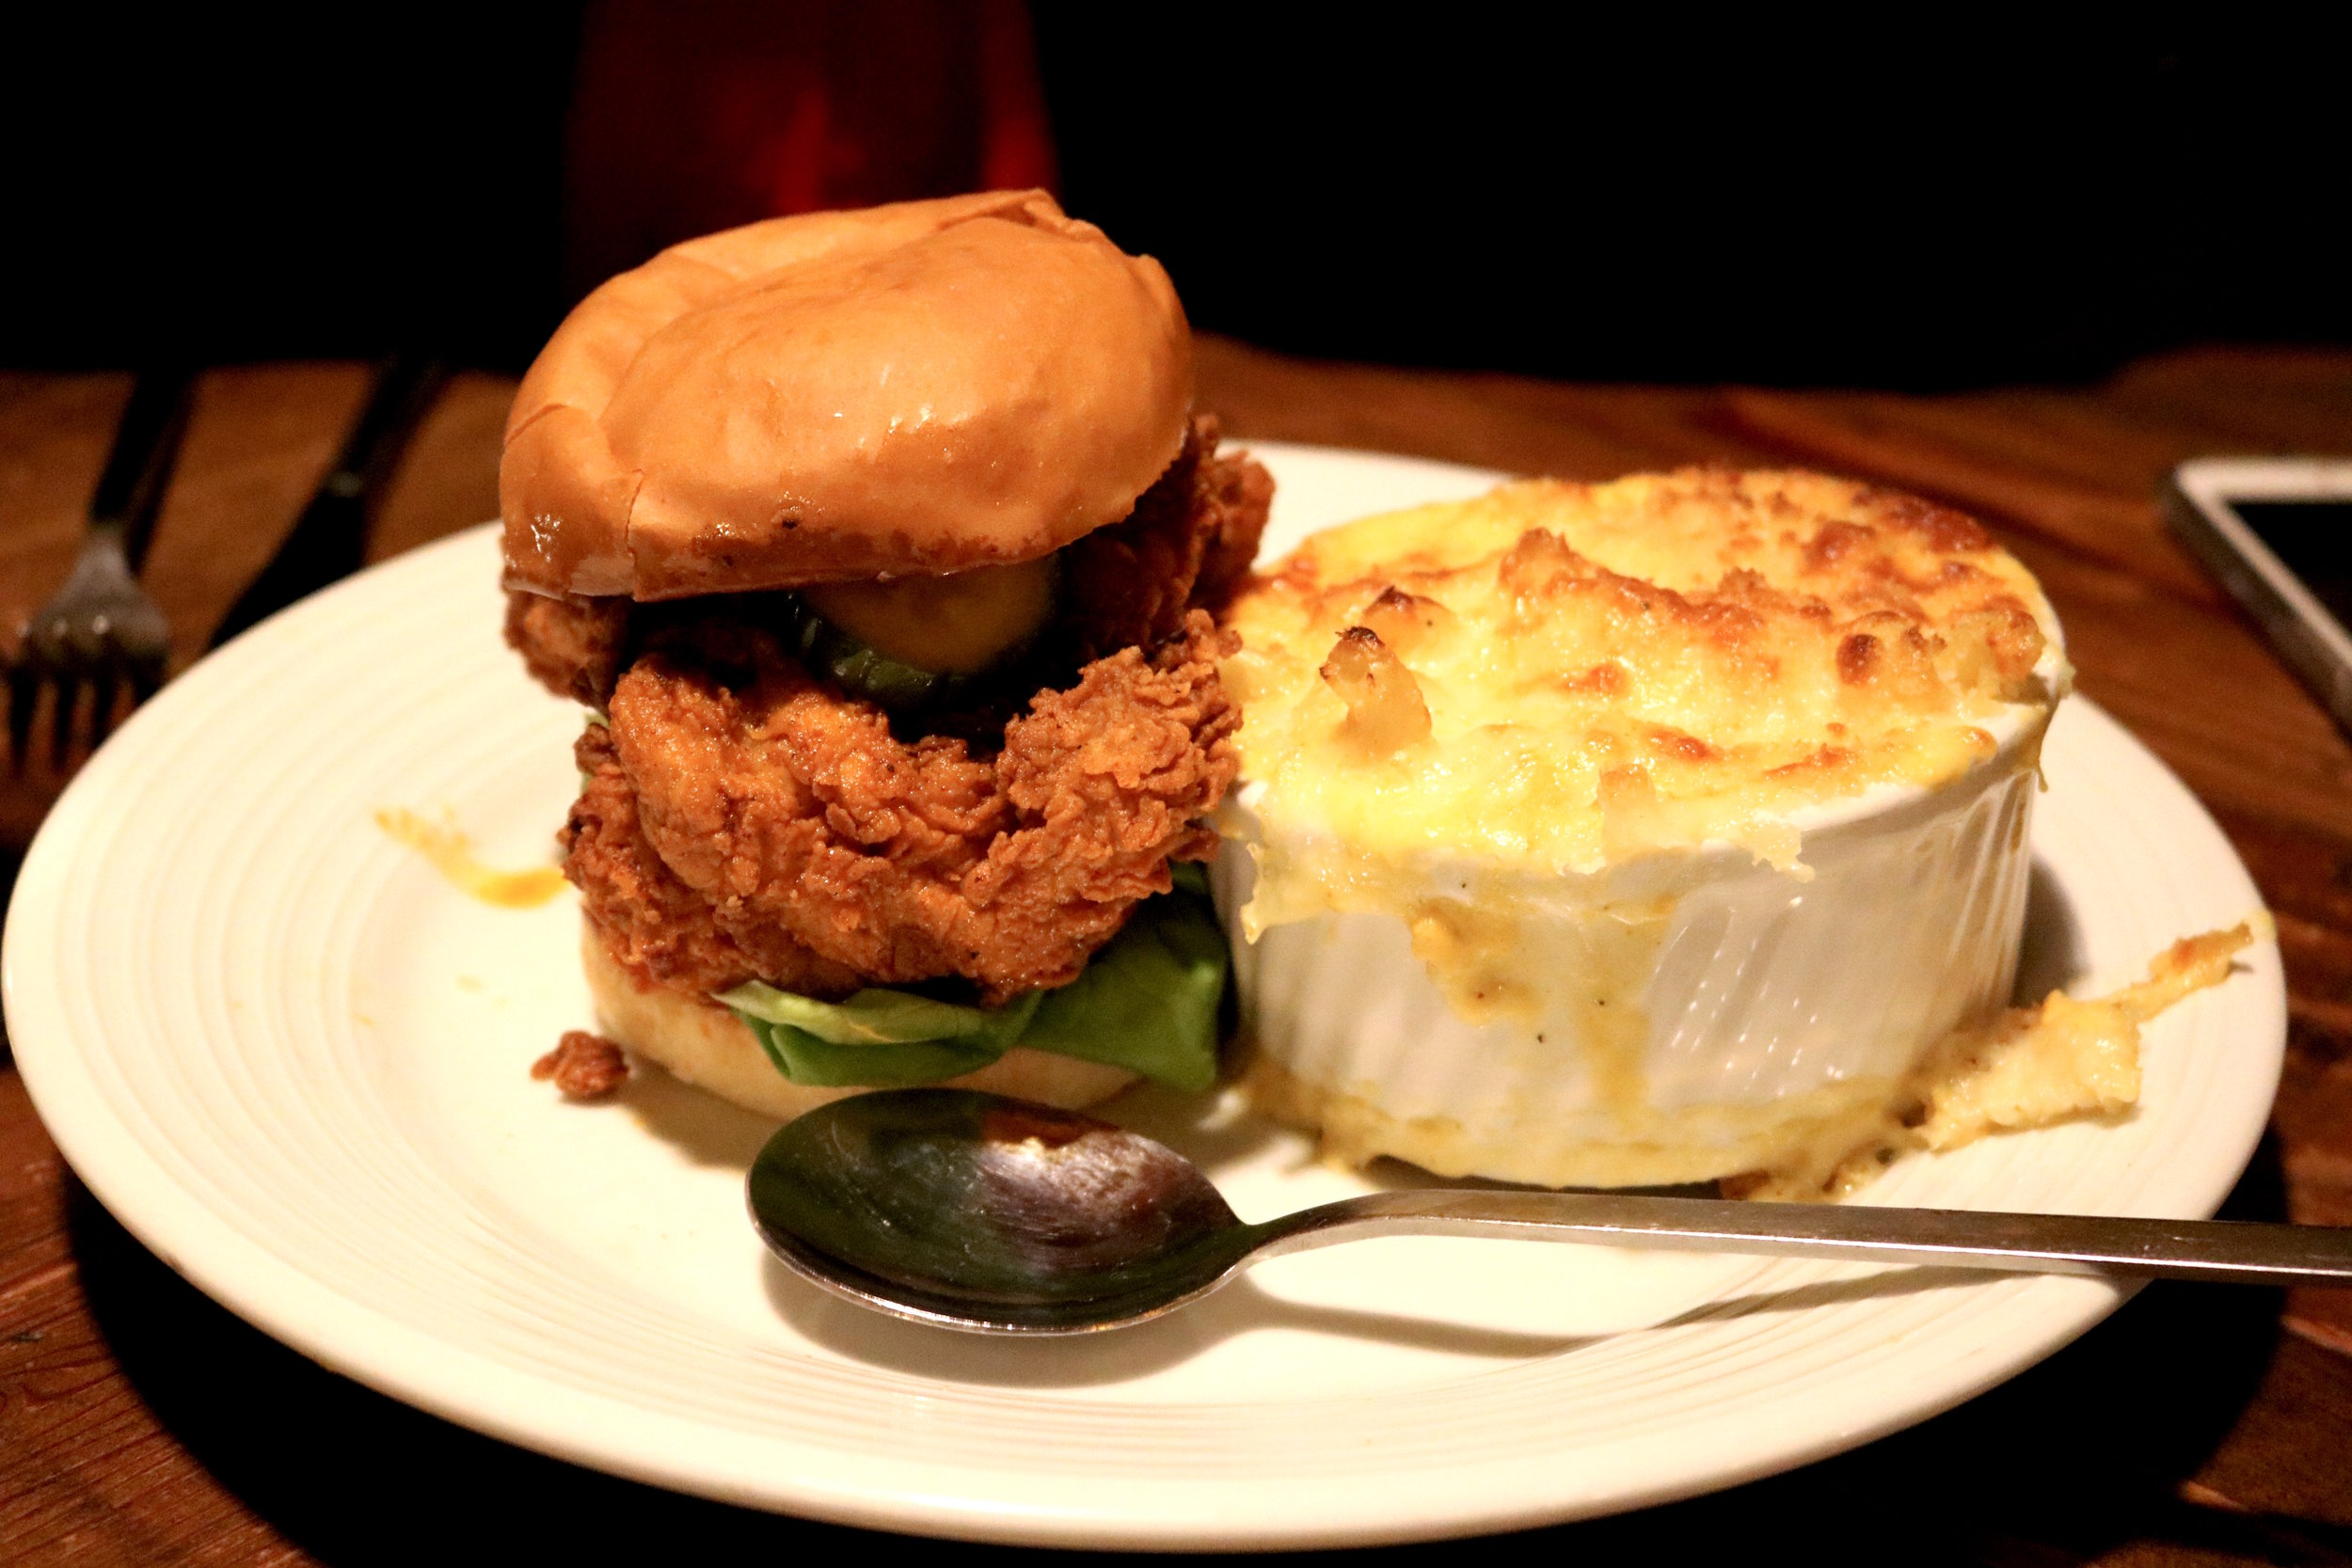 The Tennessee Hot Fried Chicken Sandwich at  Revival  in Minneapolis, MN - with Mac & Cheese of course.